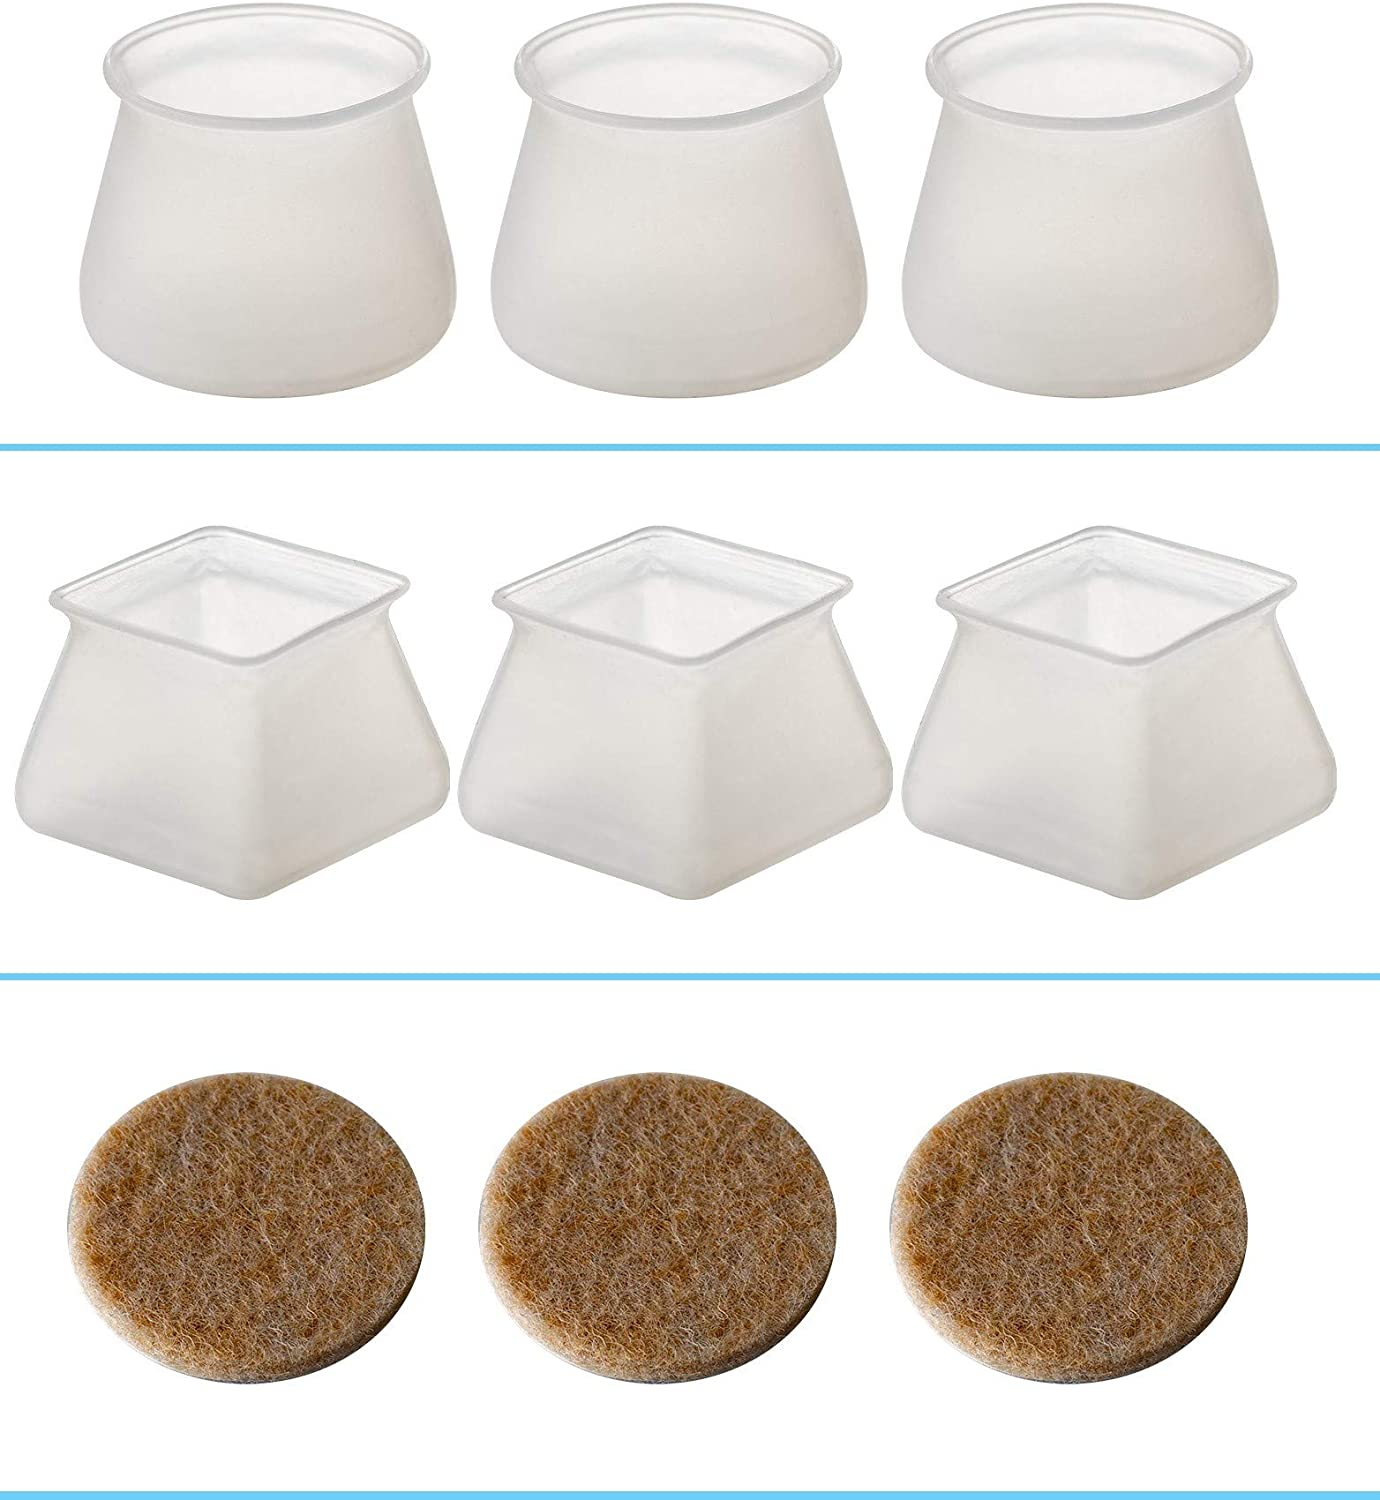 Covers for Chair Legs to Protect Floors - 32pcs Round Furniture Silicon Protection Cover Leg Cap-8pcs Square Furniture Silicon Protection Cover Leg Cap-60pcs Wool Felt Pad Self-Adhesive Furniture Pads